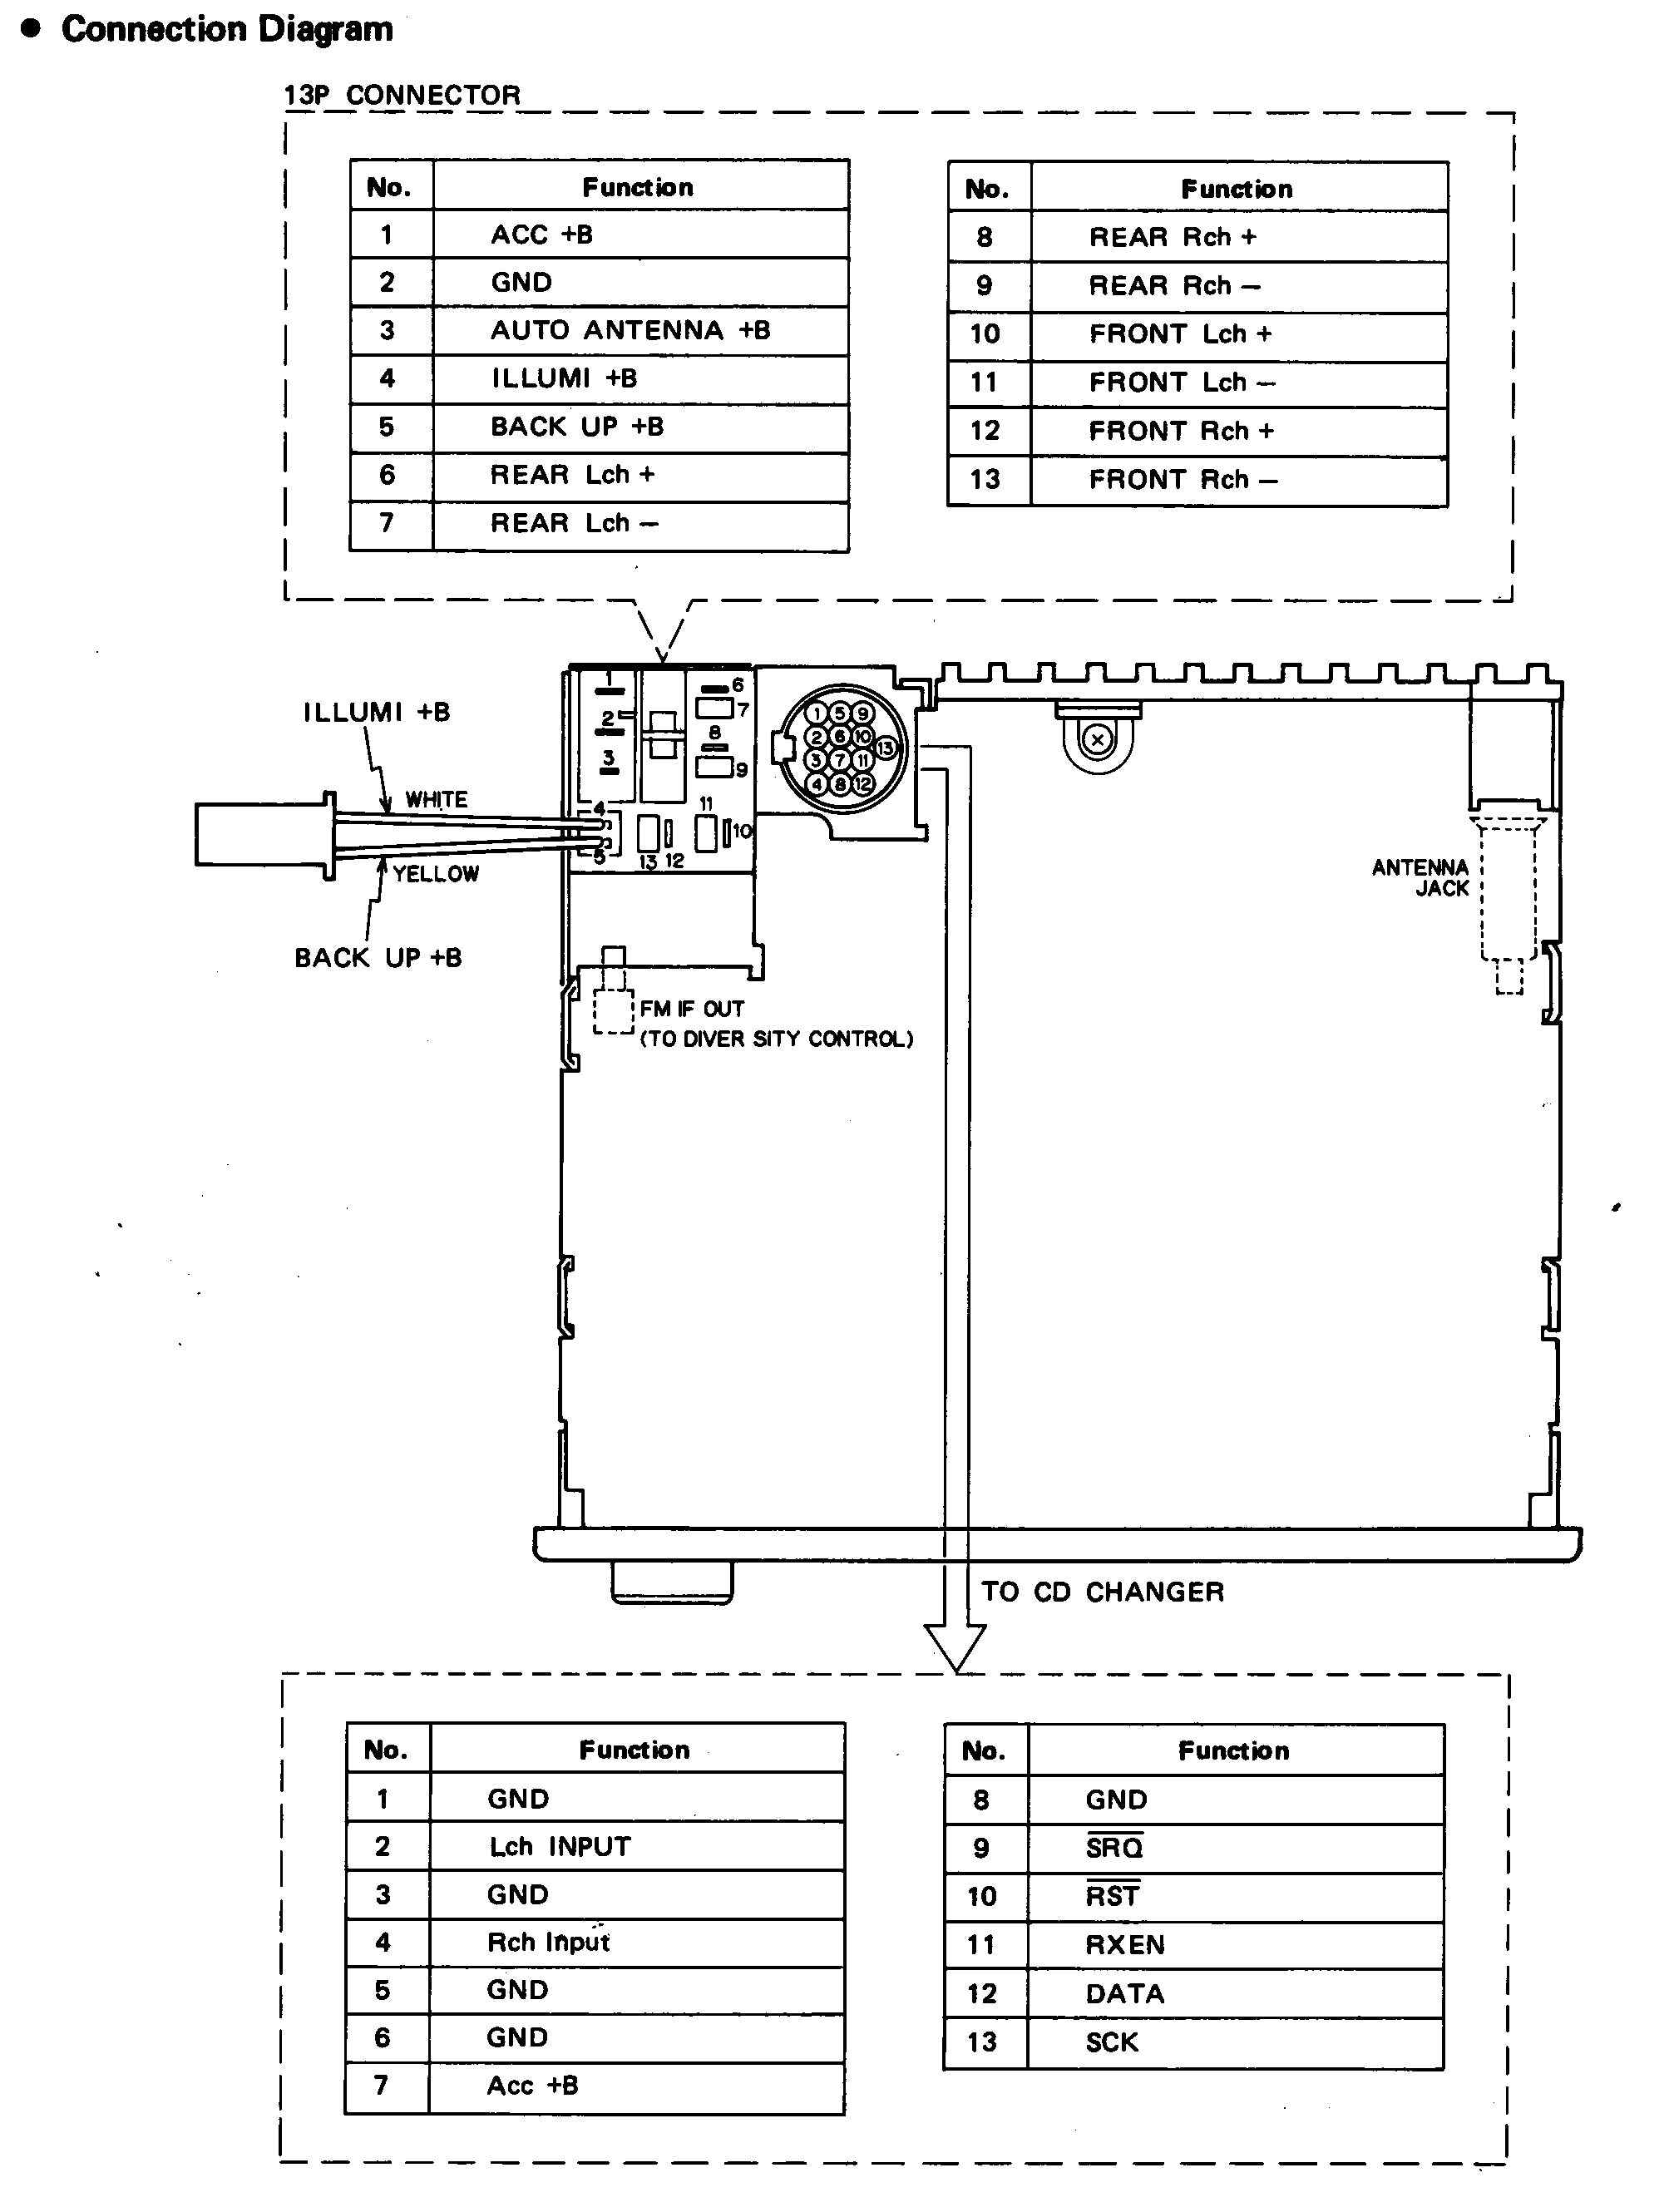 WireHarnessBMW121701 kenwood car radio wiring diagram wirdig readingrat net e46 speaker wiring diagram at reclaimingppi.co